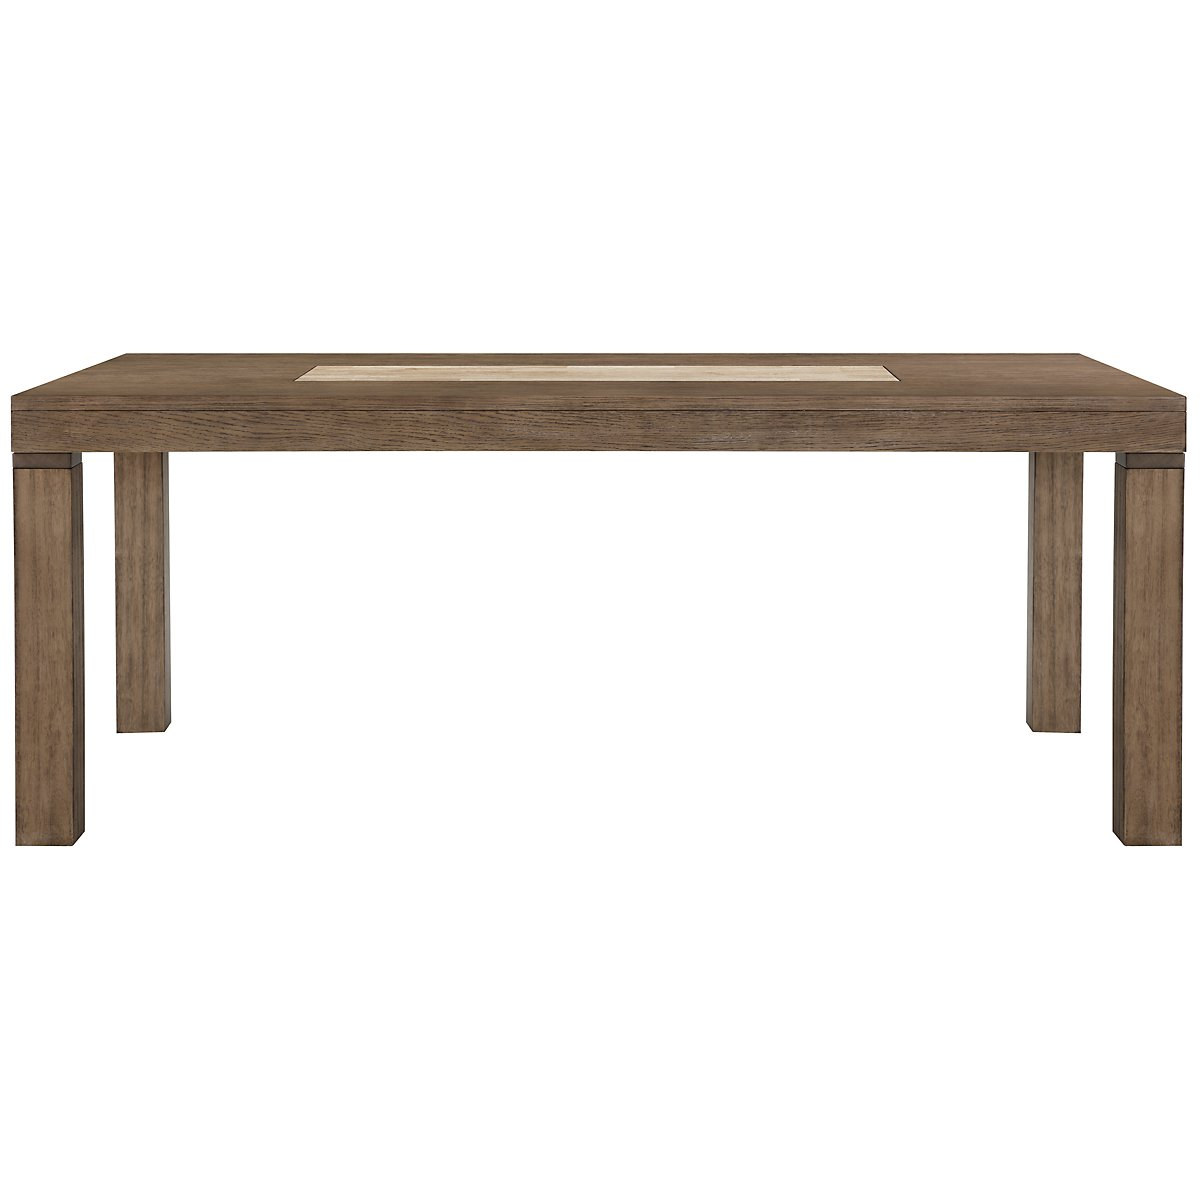 Mirabelle Light Tone Rectangular Table